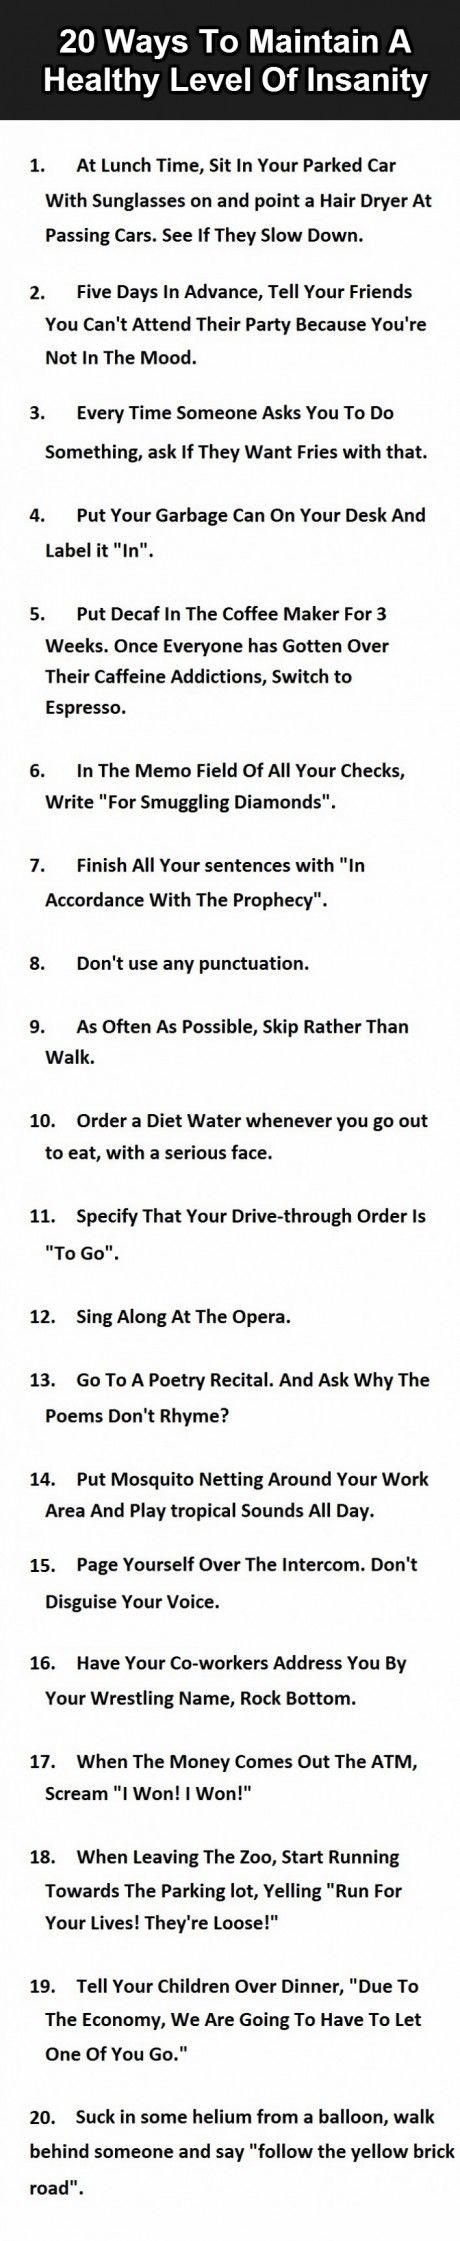 Best Funny Quotes I Want To Do 10 And 20 Hahaha Omg Quotes